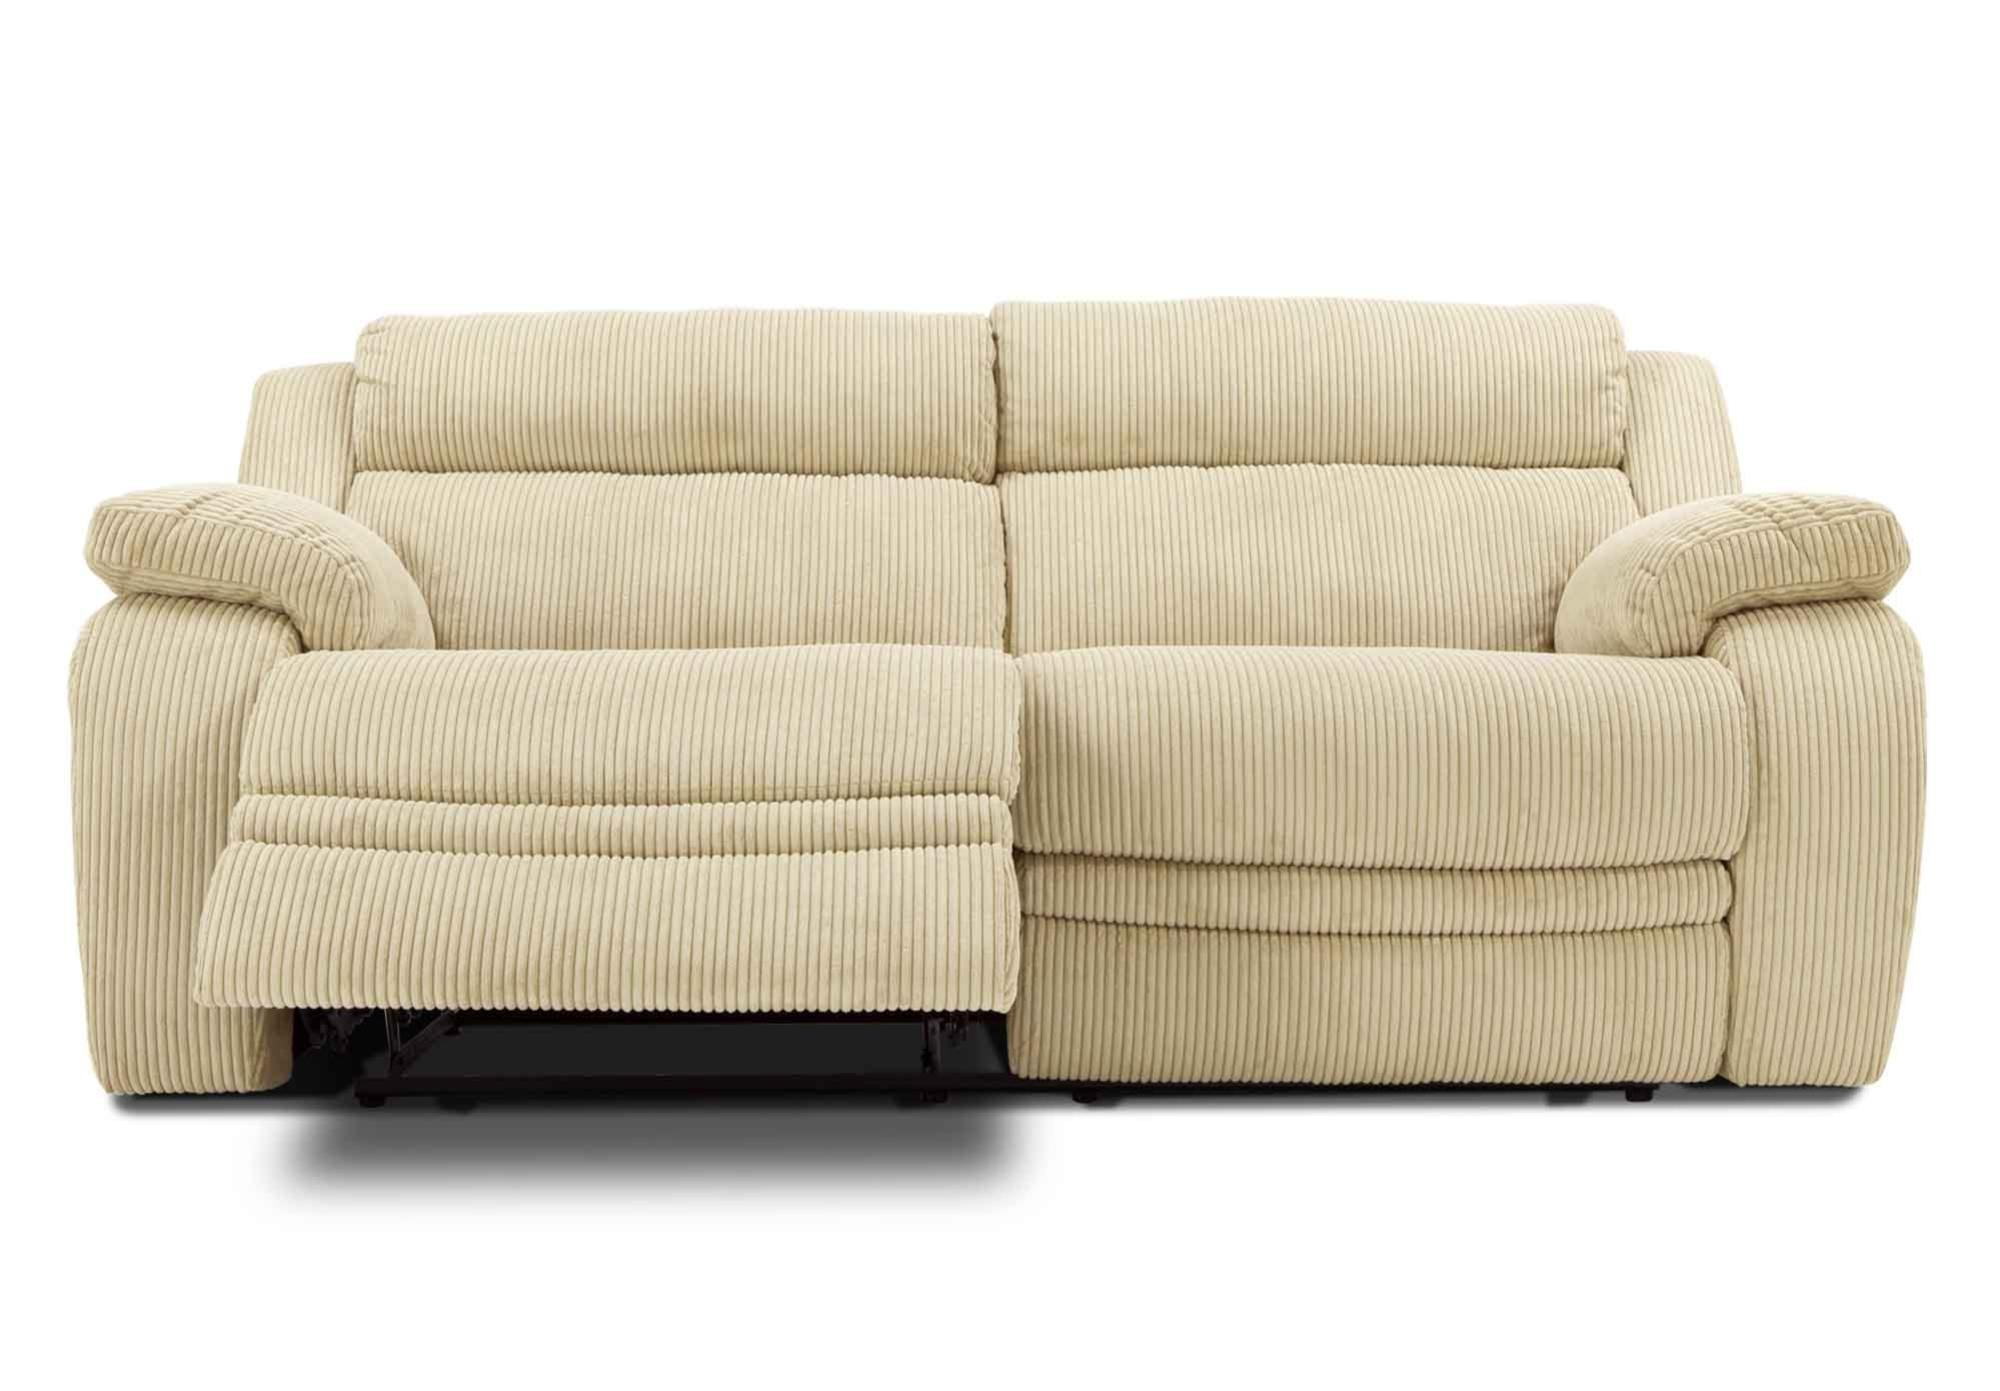 Sofas Center : Sofa With Recliner Slipcovers Chaise Leather And For Sofa Armchair Covers (View 7 of 20)